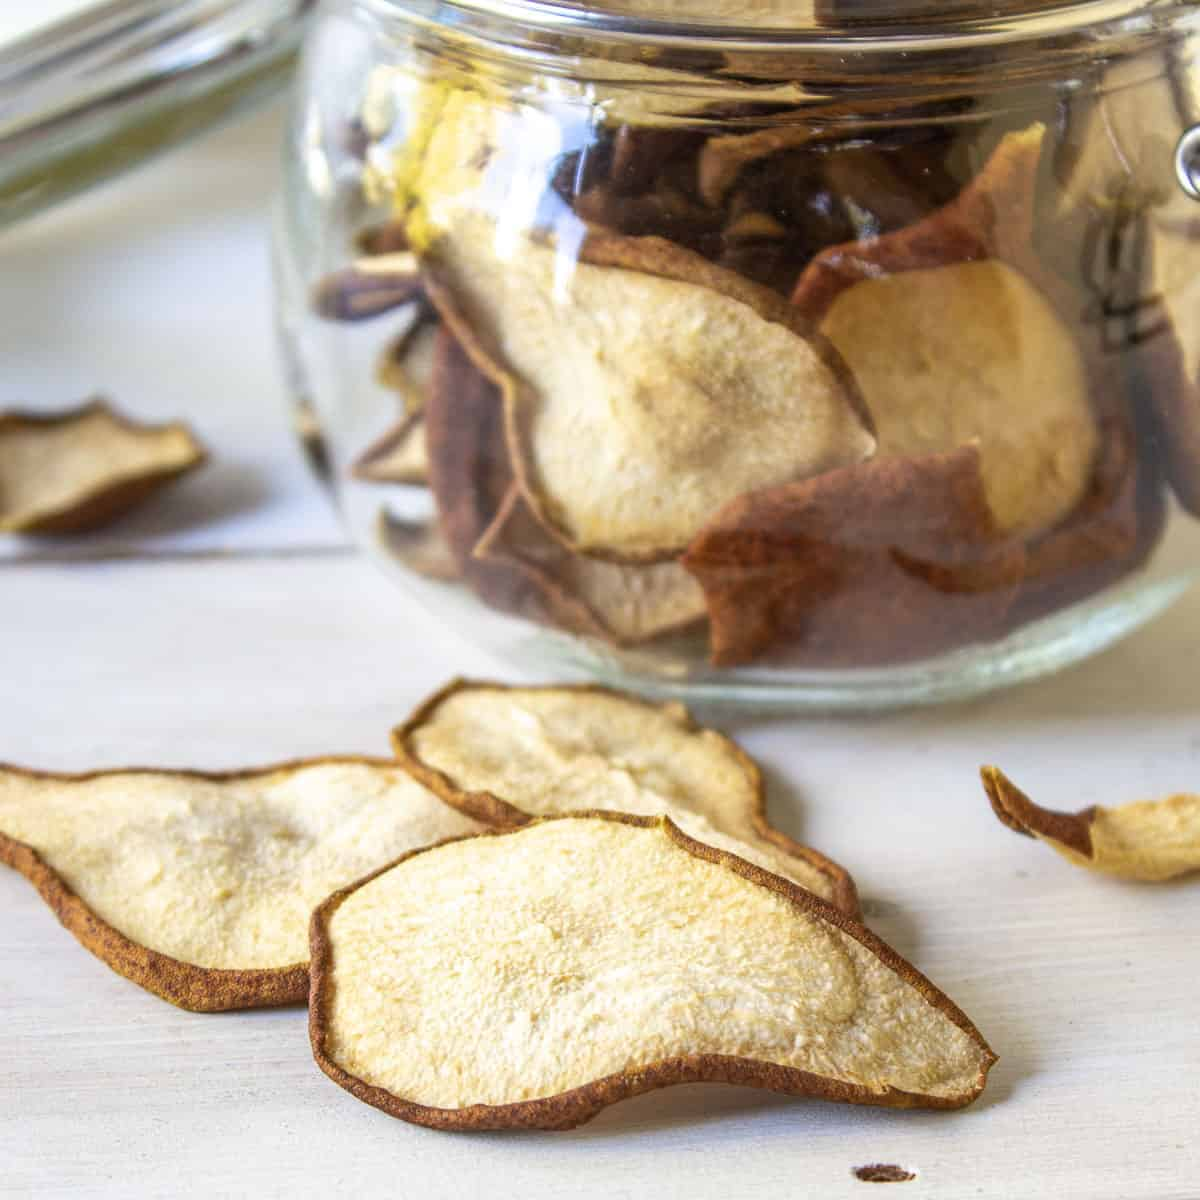 Dried pears on a board with a glass jar filled with pear chips behind them.